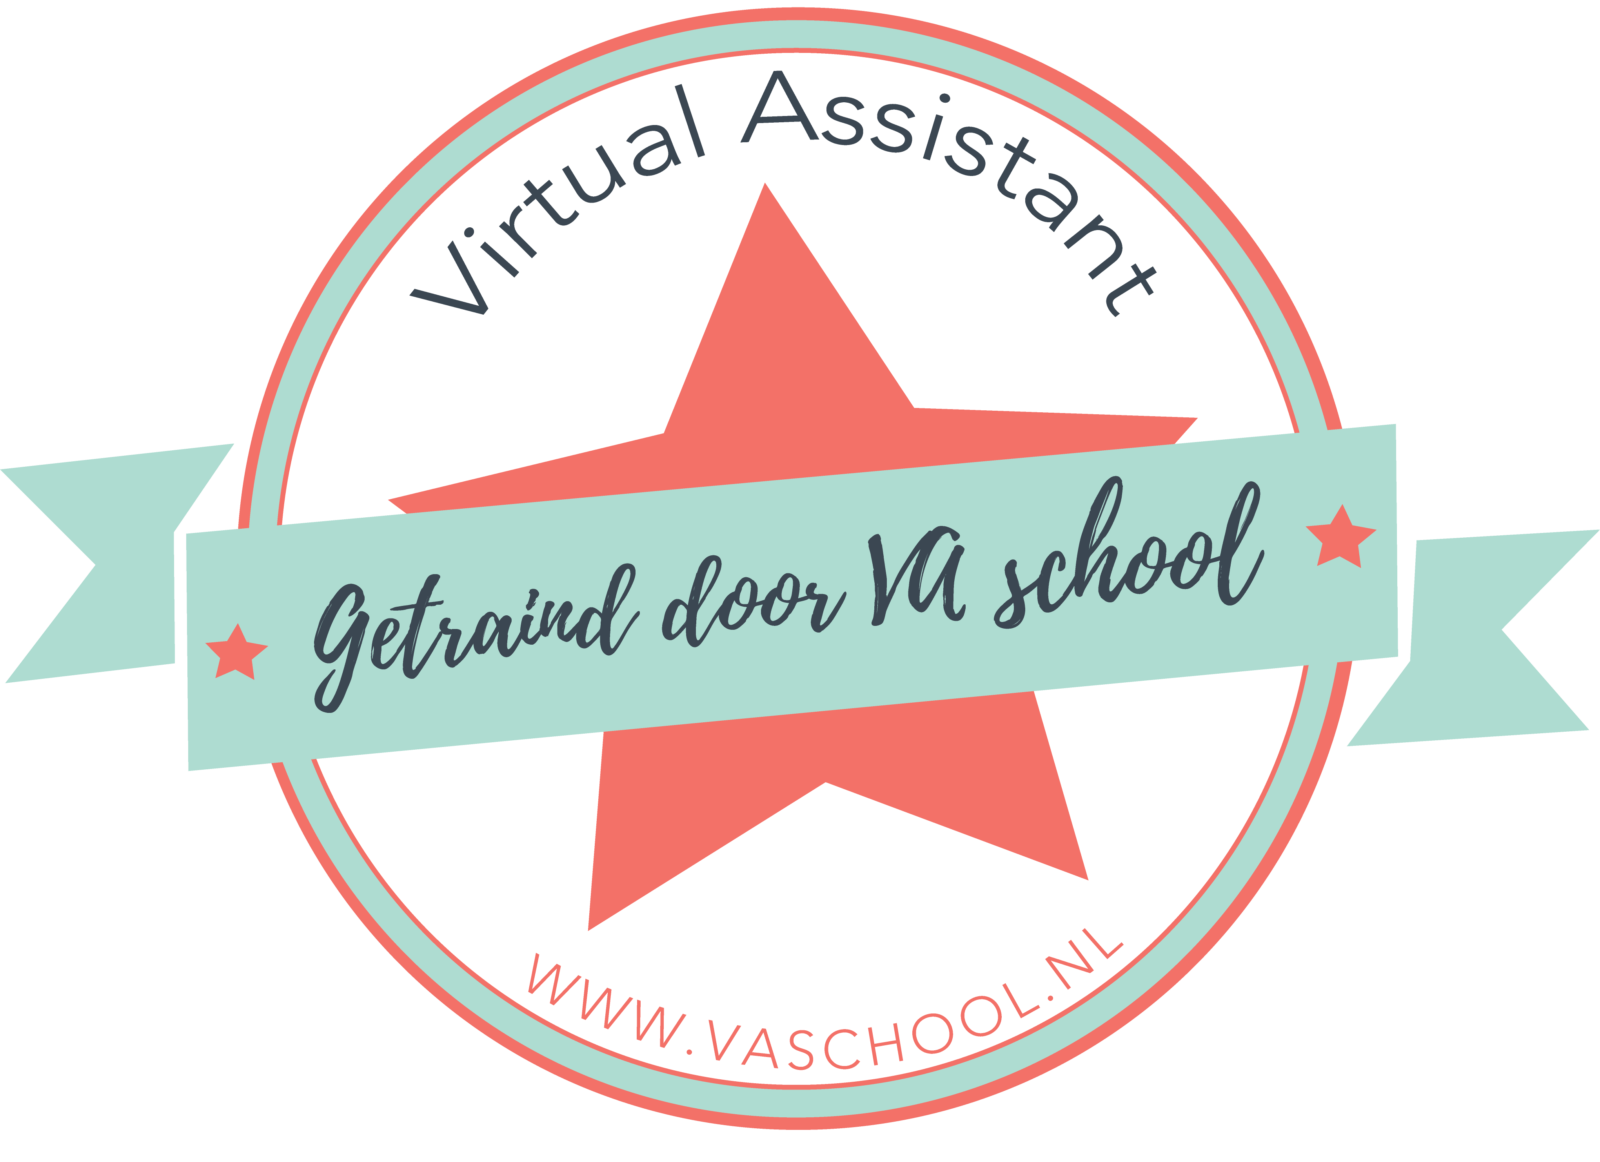 Gecertificeerd virtual assistant